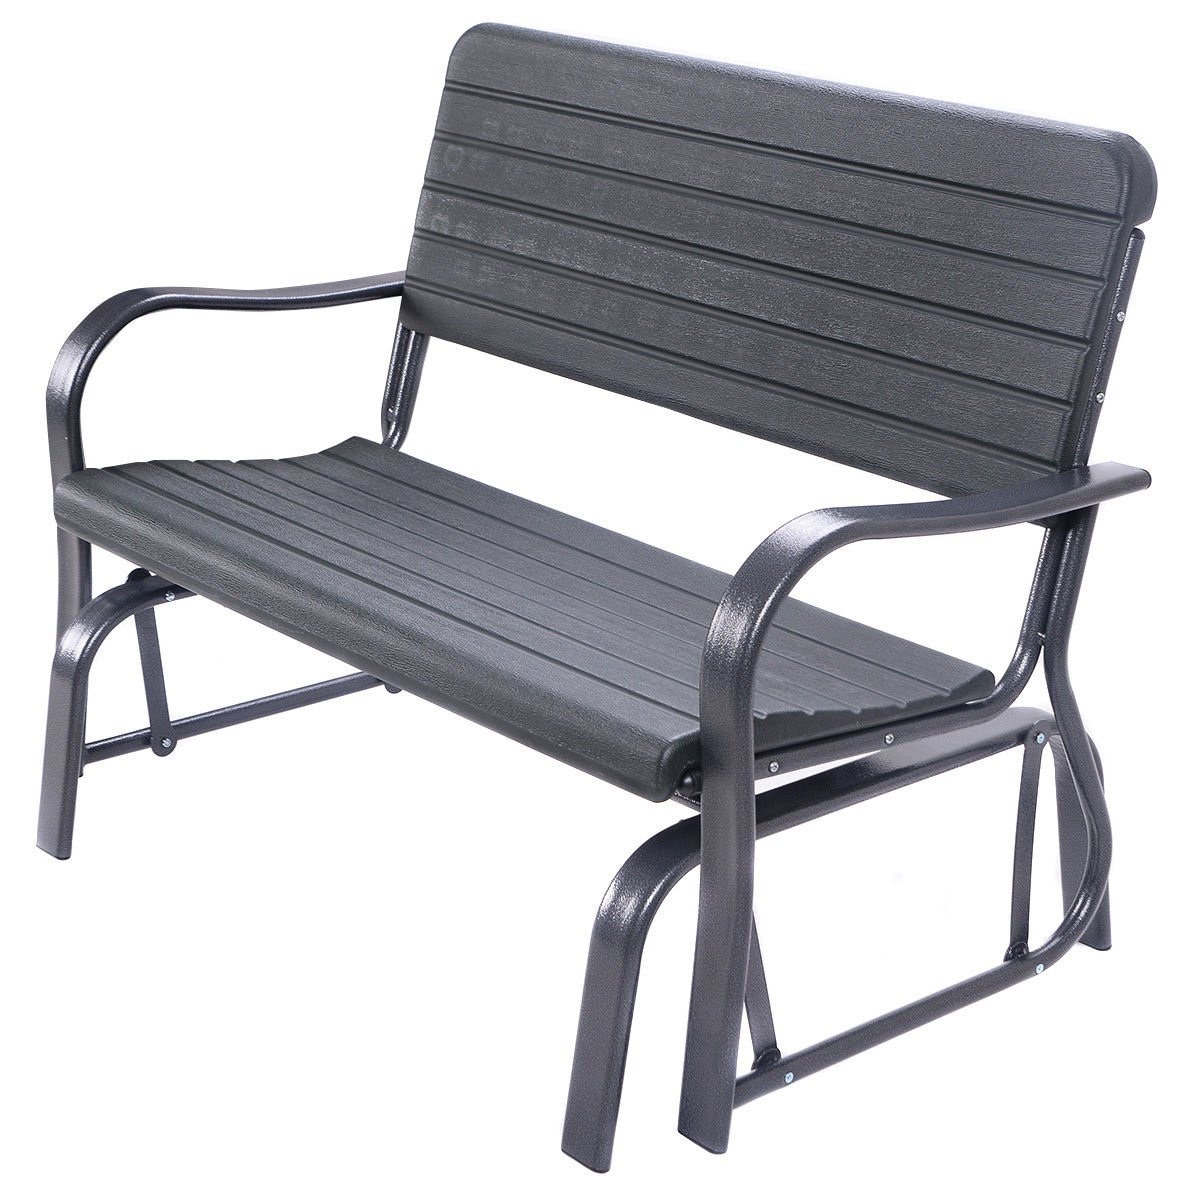 Most Recent Outdoor Patio Swing Glider Benches Within Amazon : Nature Republic Outdoor Patio Swing Porch (Gallery 1 of 30)